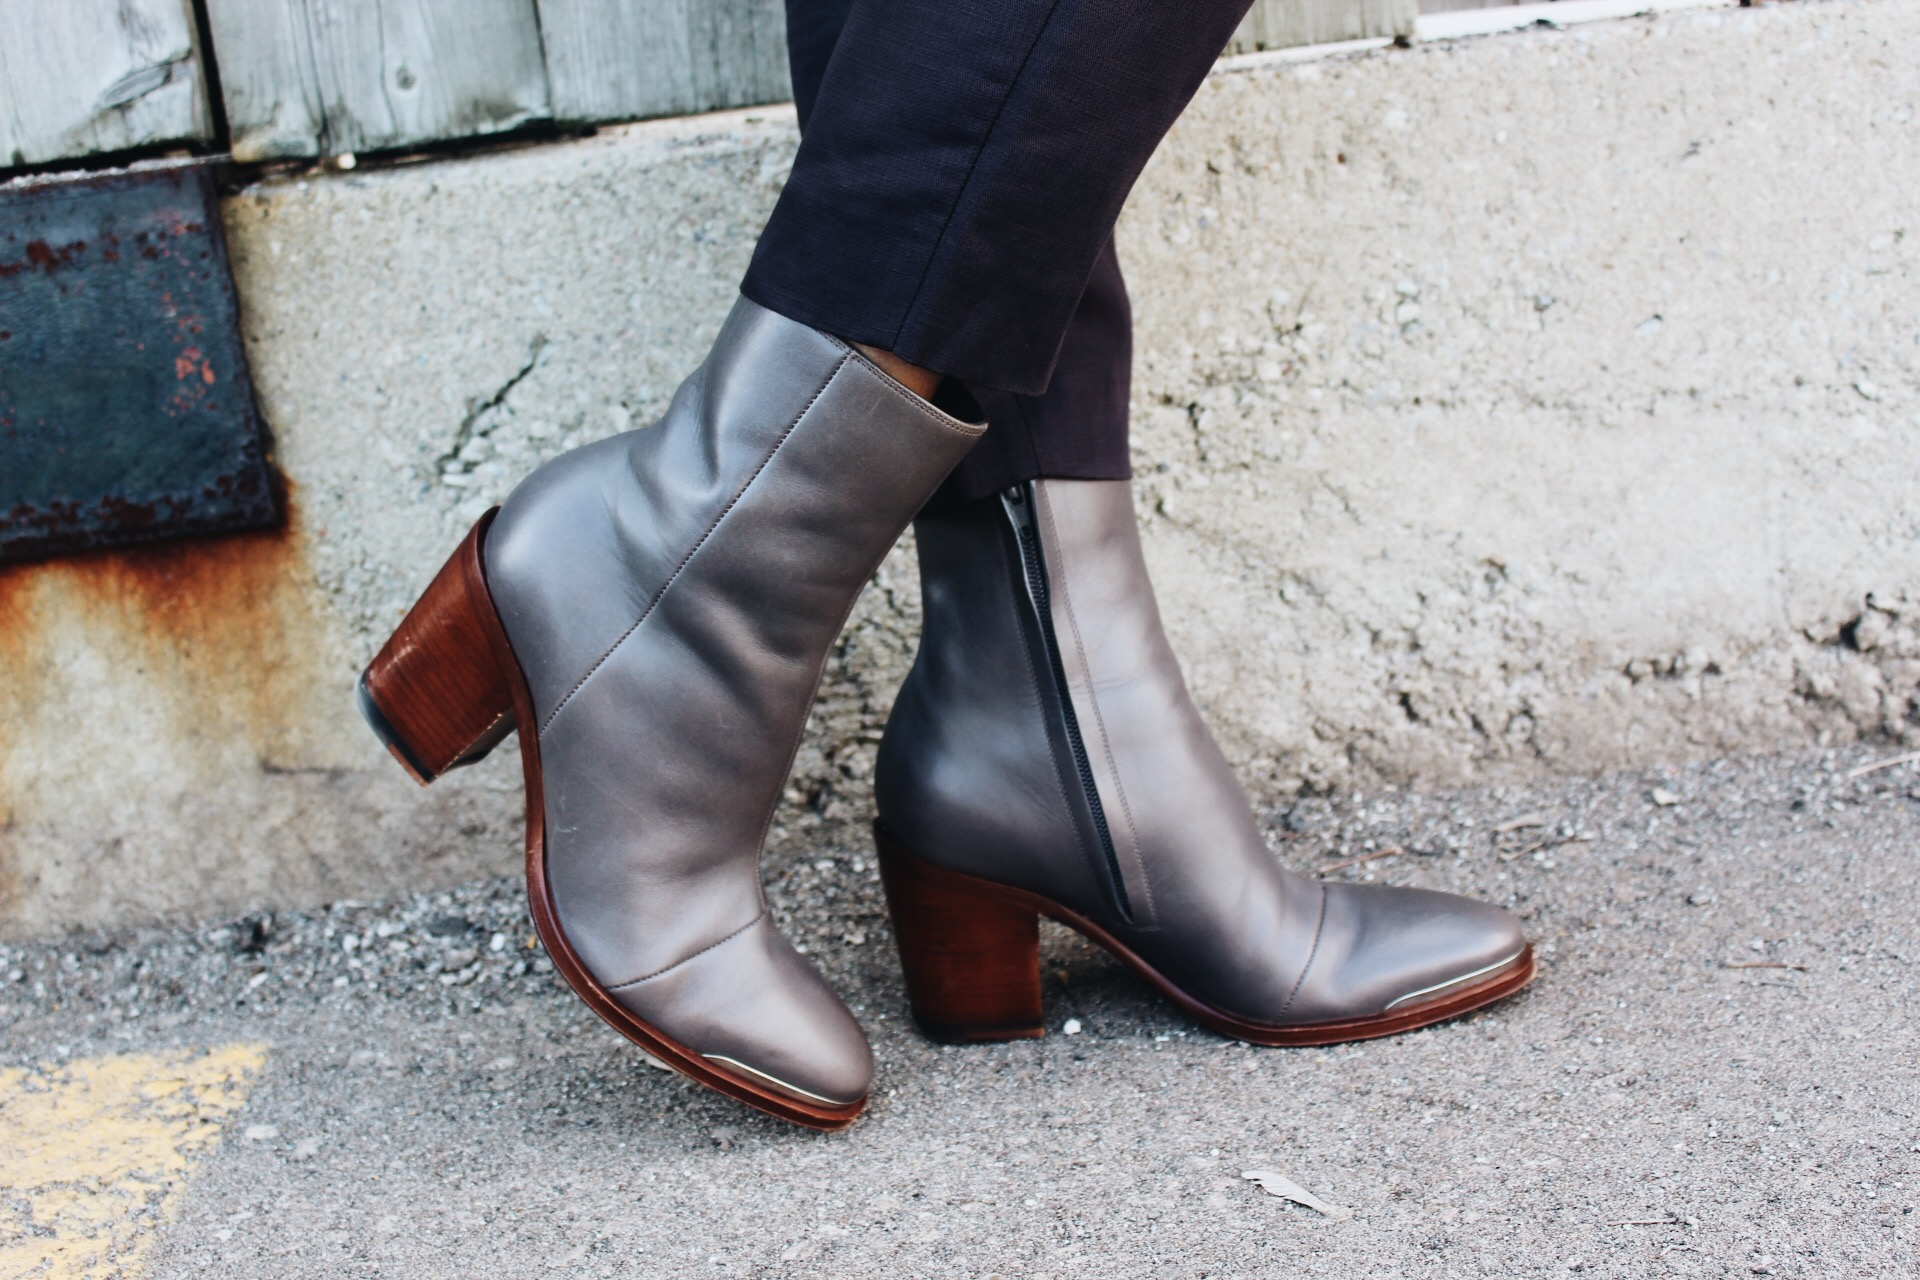 Grey, Celine, ankle boots, brown heel, silver, ankle, boots, fashion,humber, student, street wear, Campus street style, 2017